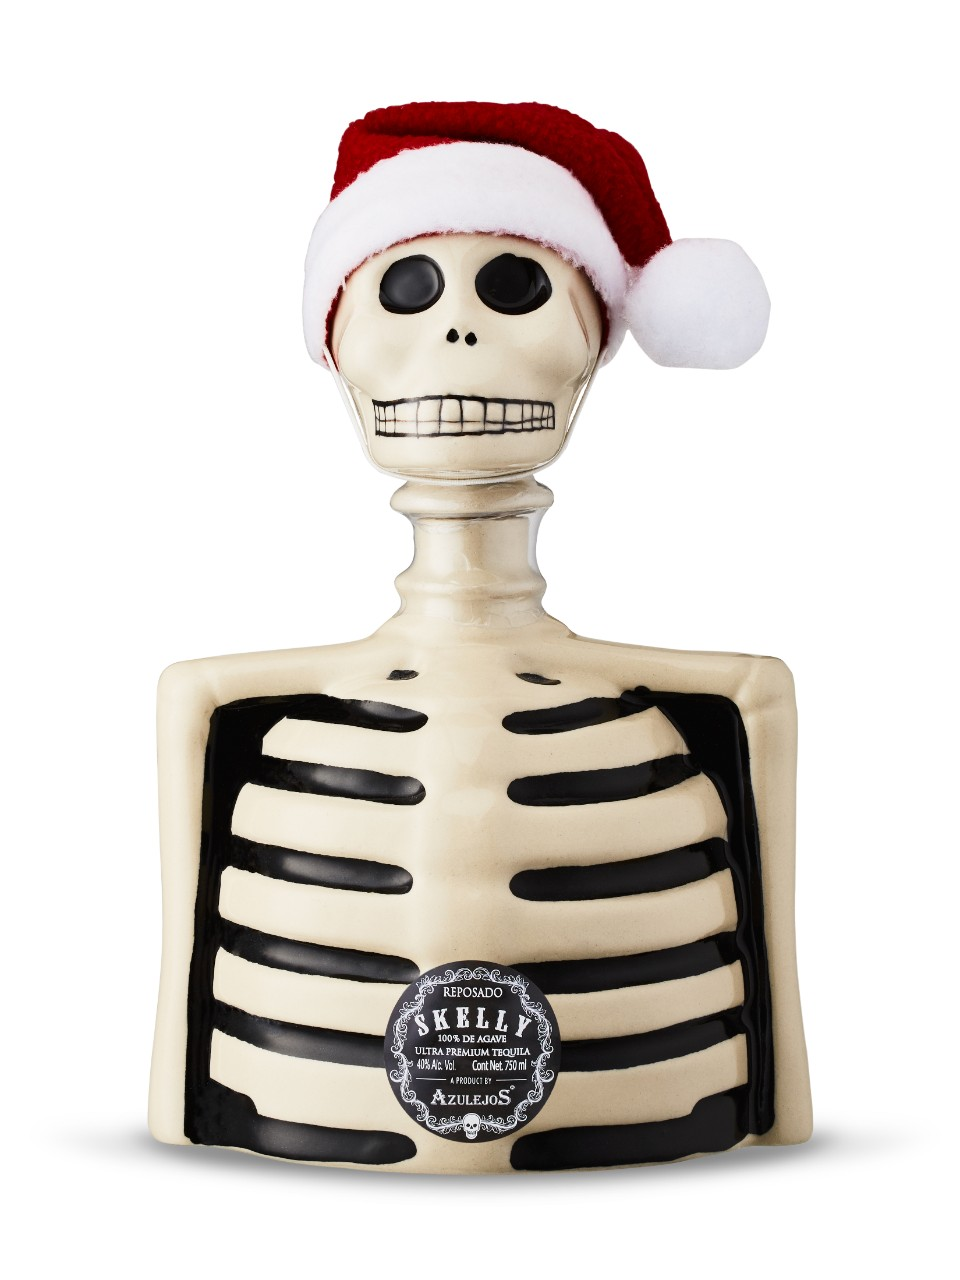 Skelly Tequila Reposado Gift Box